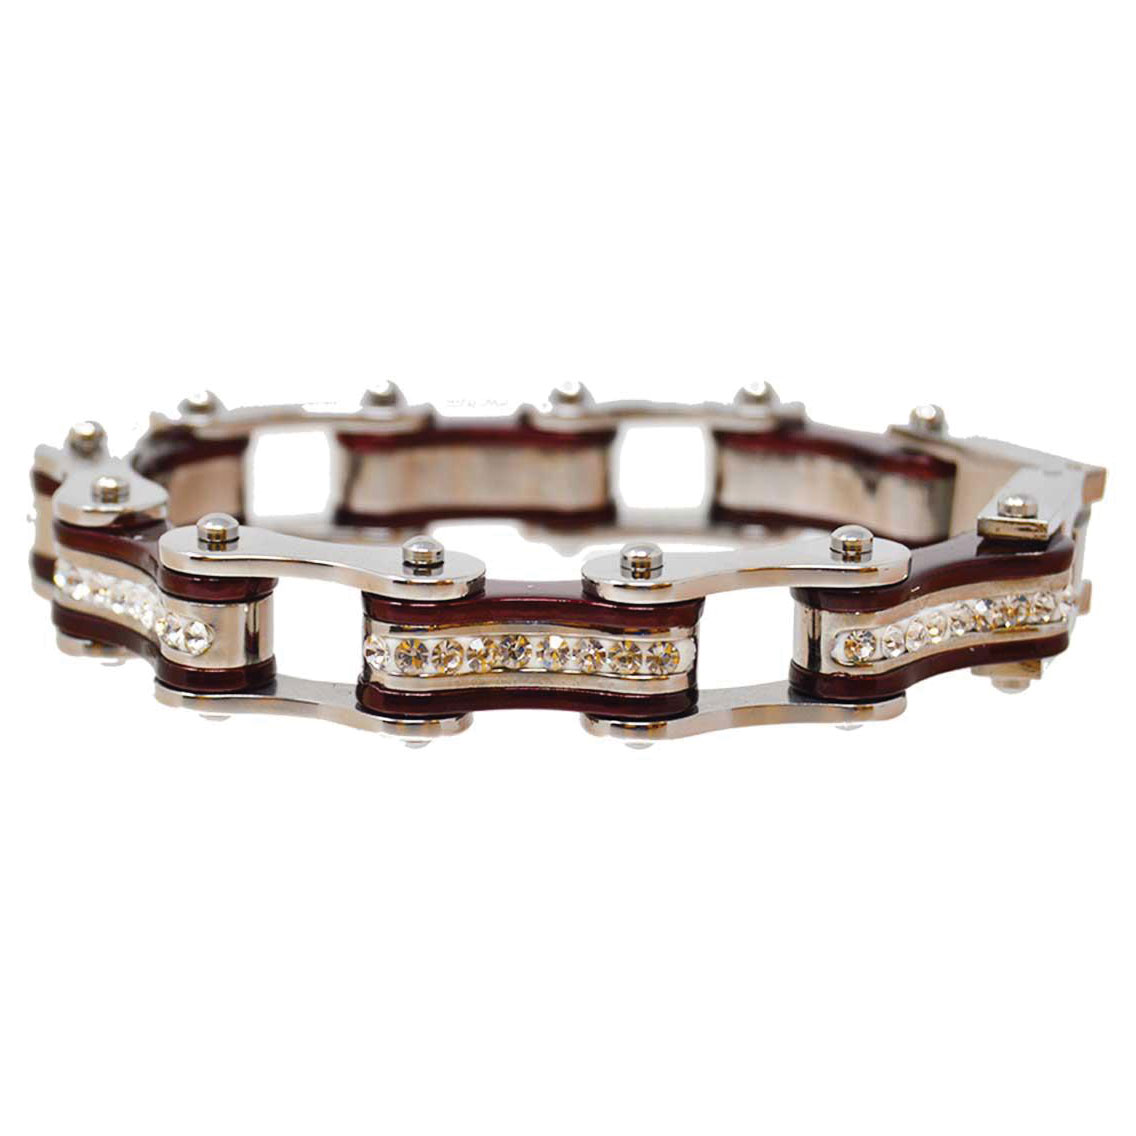 Vance Leathers Silver/Candy Red Bracelet with Crystal Links